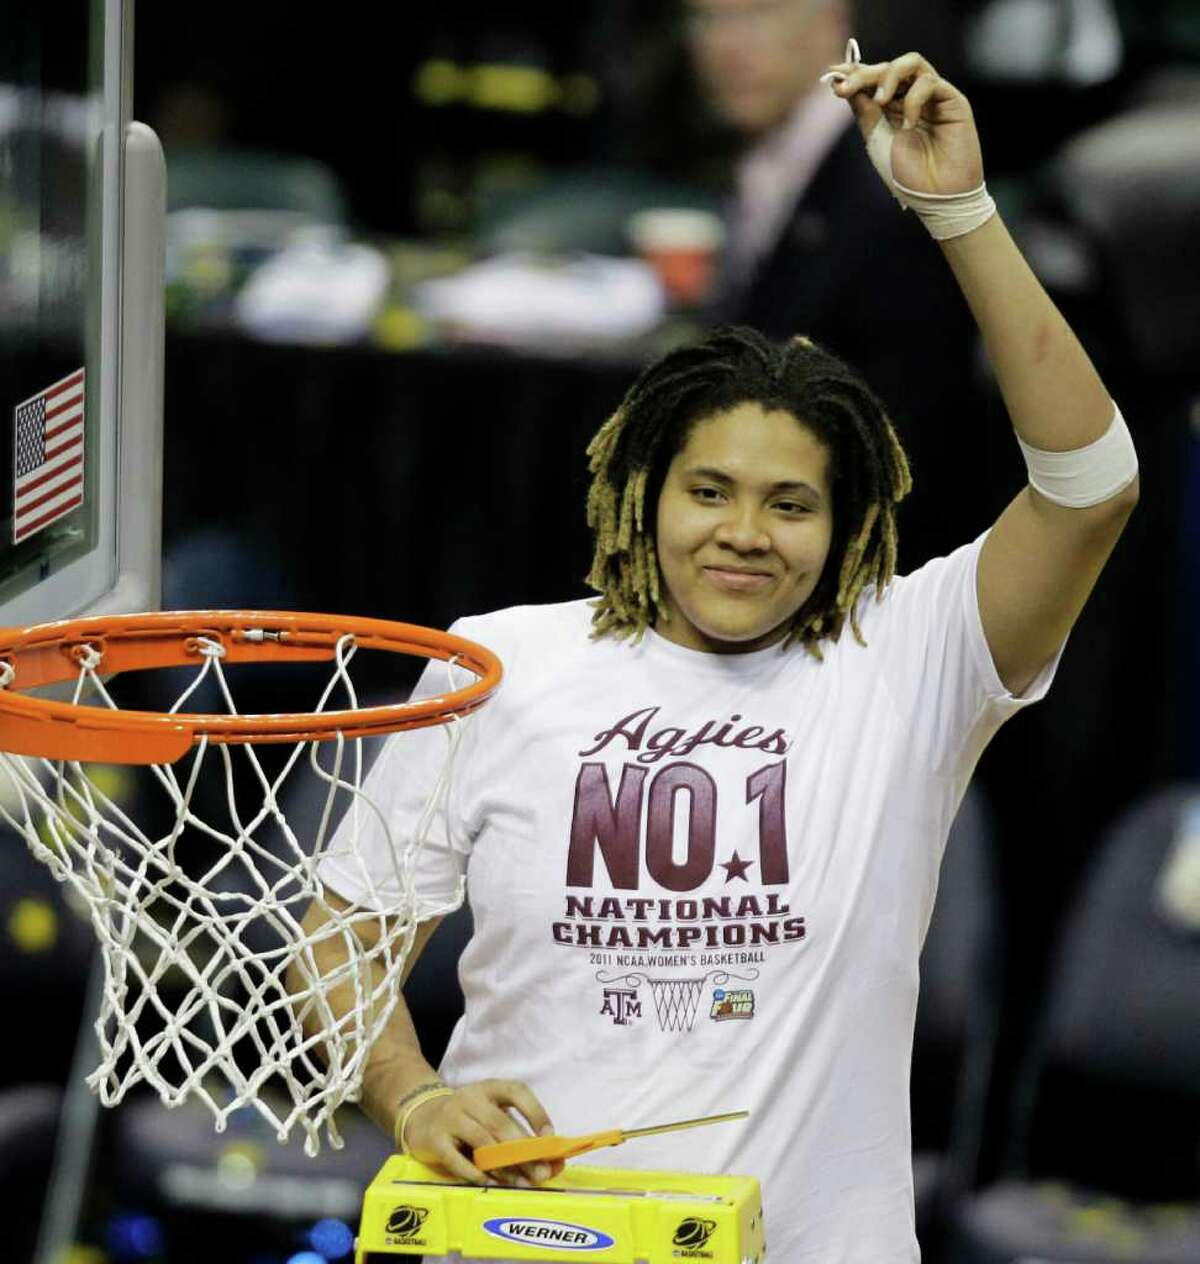 Texas A&M's Danielle Adams holds a piece of the net after Texas A&M's 76-70 win over Notre Dame in the women's NCAA Final Four college basketball championship game in Indianapolis, Tuesday, April 5, 2011.